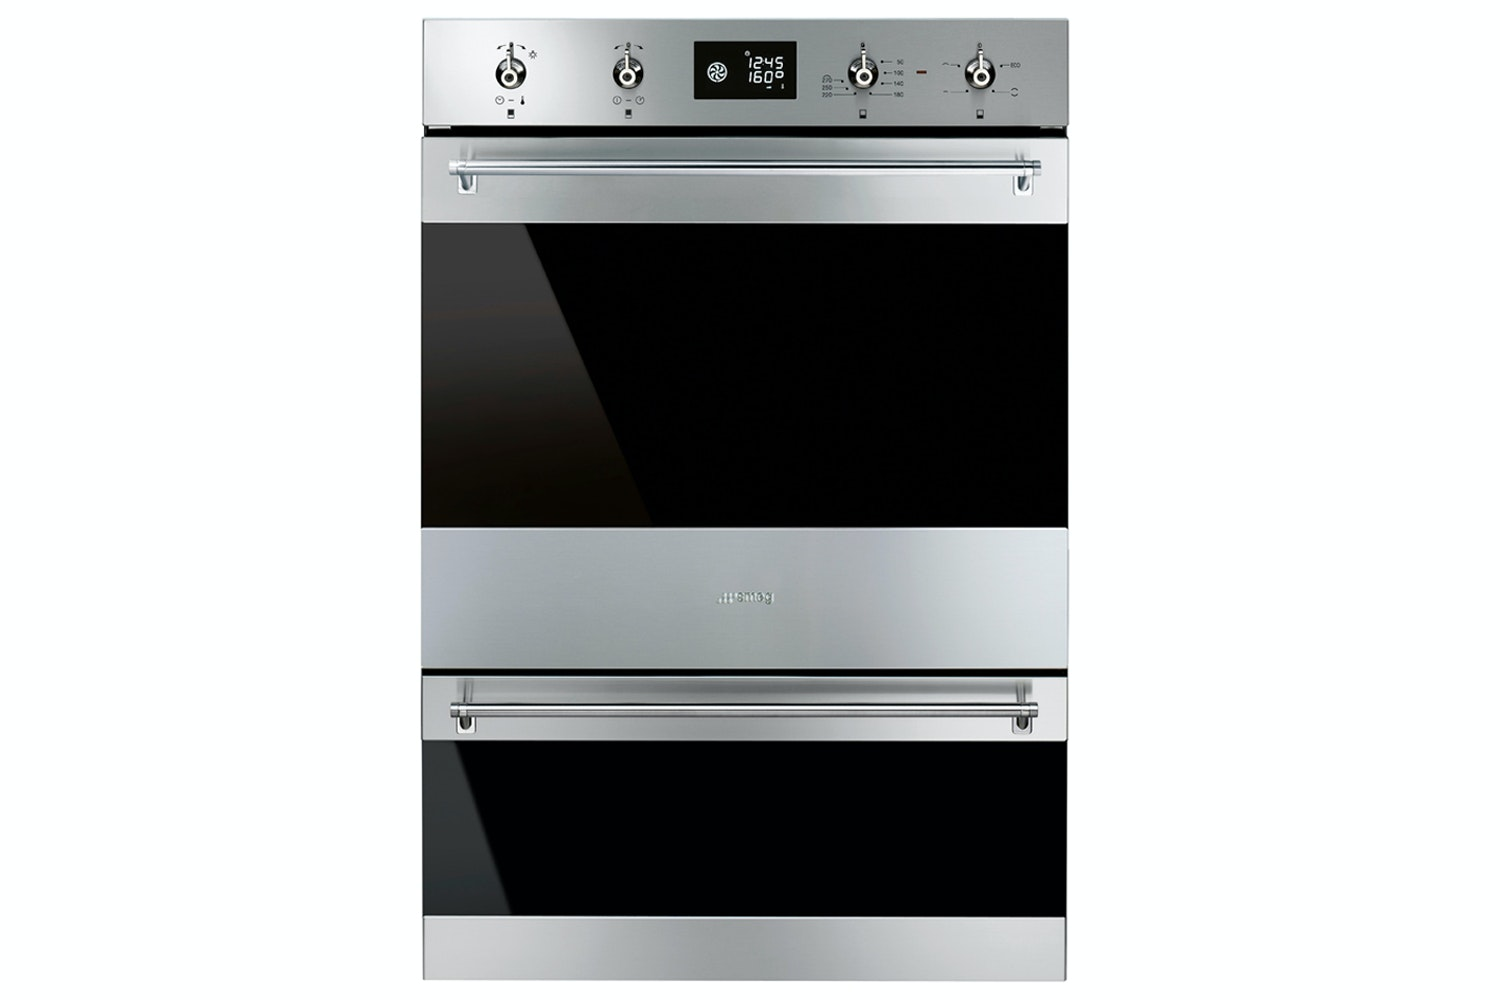 Smeg Built-in Double Oven | DOSP6390X | Stainless Steel